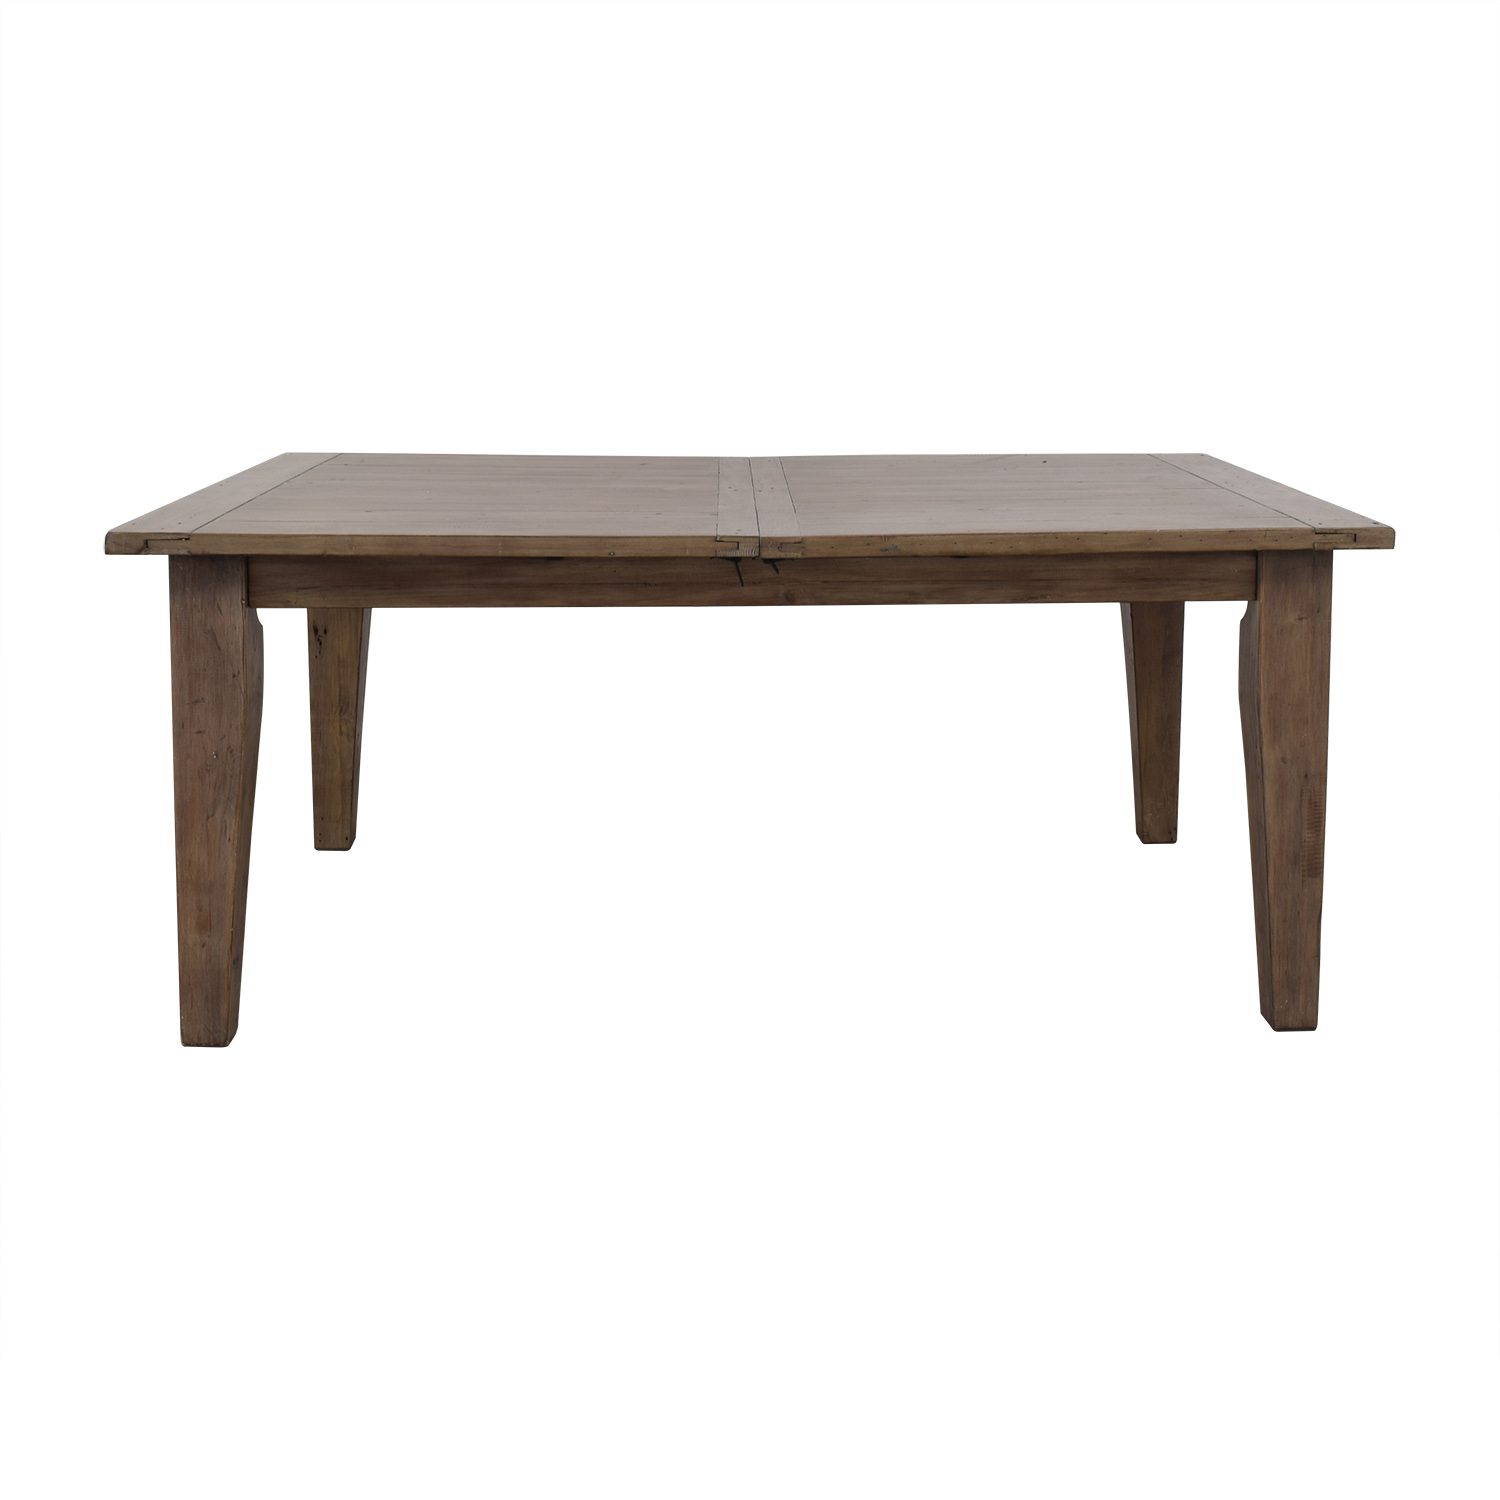 Four Hands Irish Coast Extension Dining Table / Dinner Tables